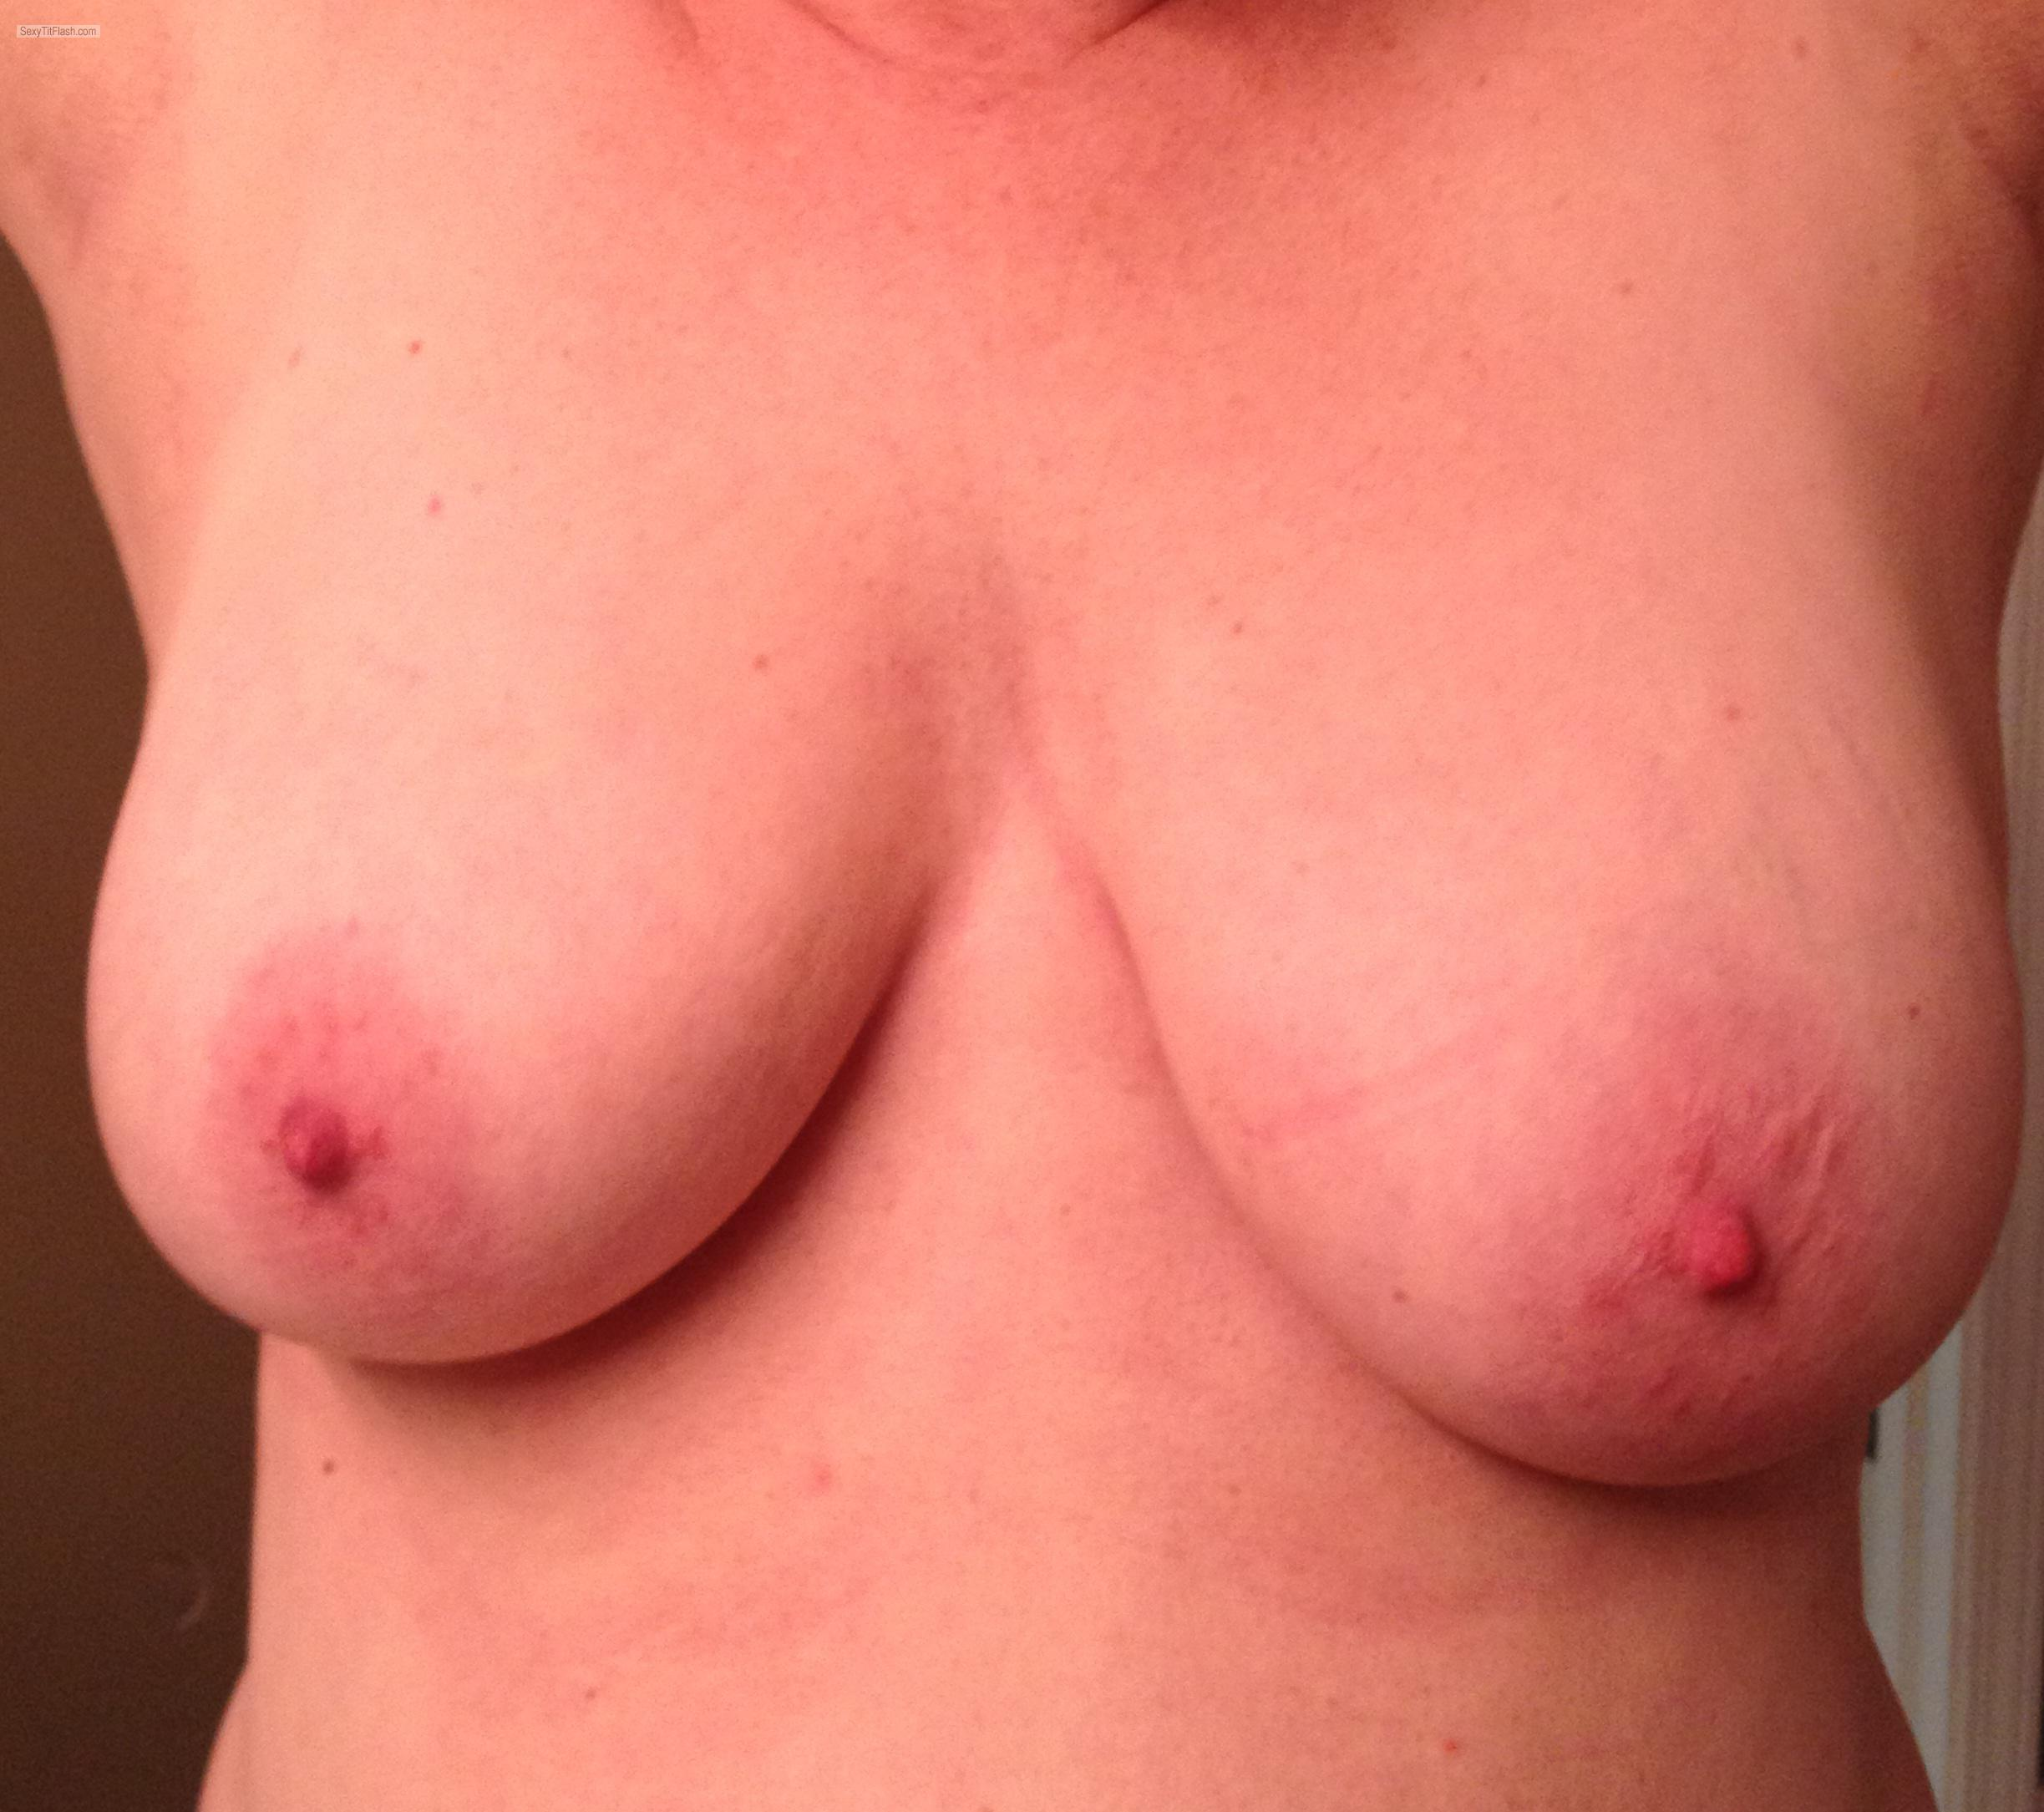 Tit Flash: Wife's Big Tits - Wifeys Tits from United States